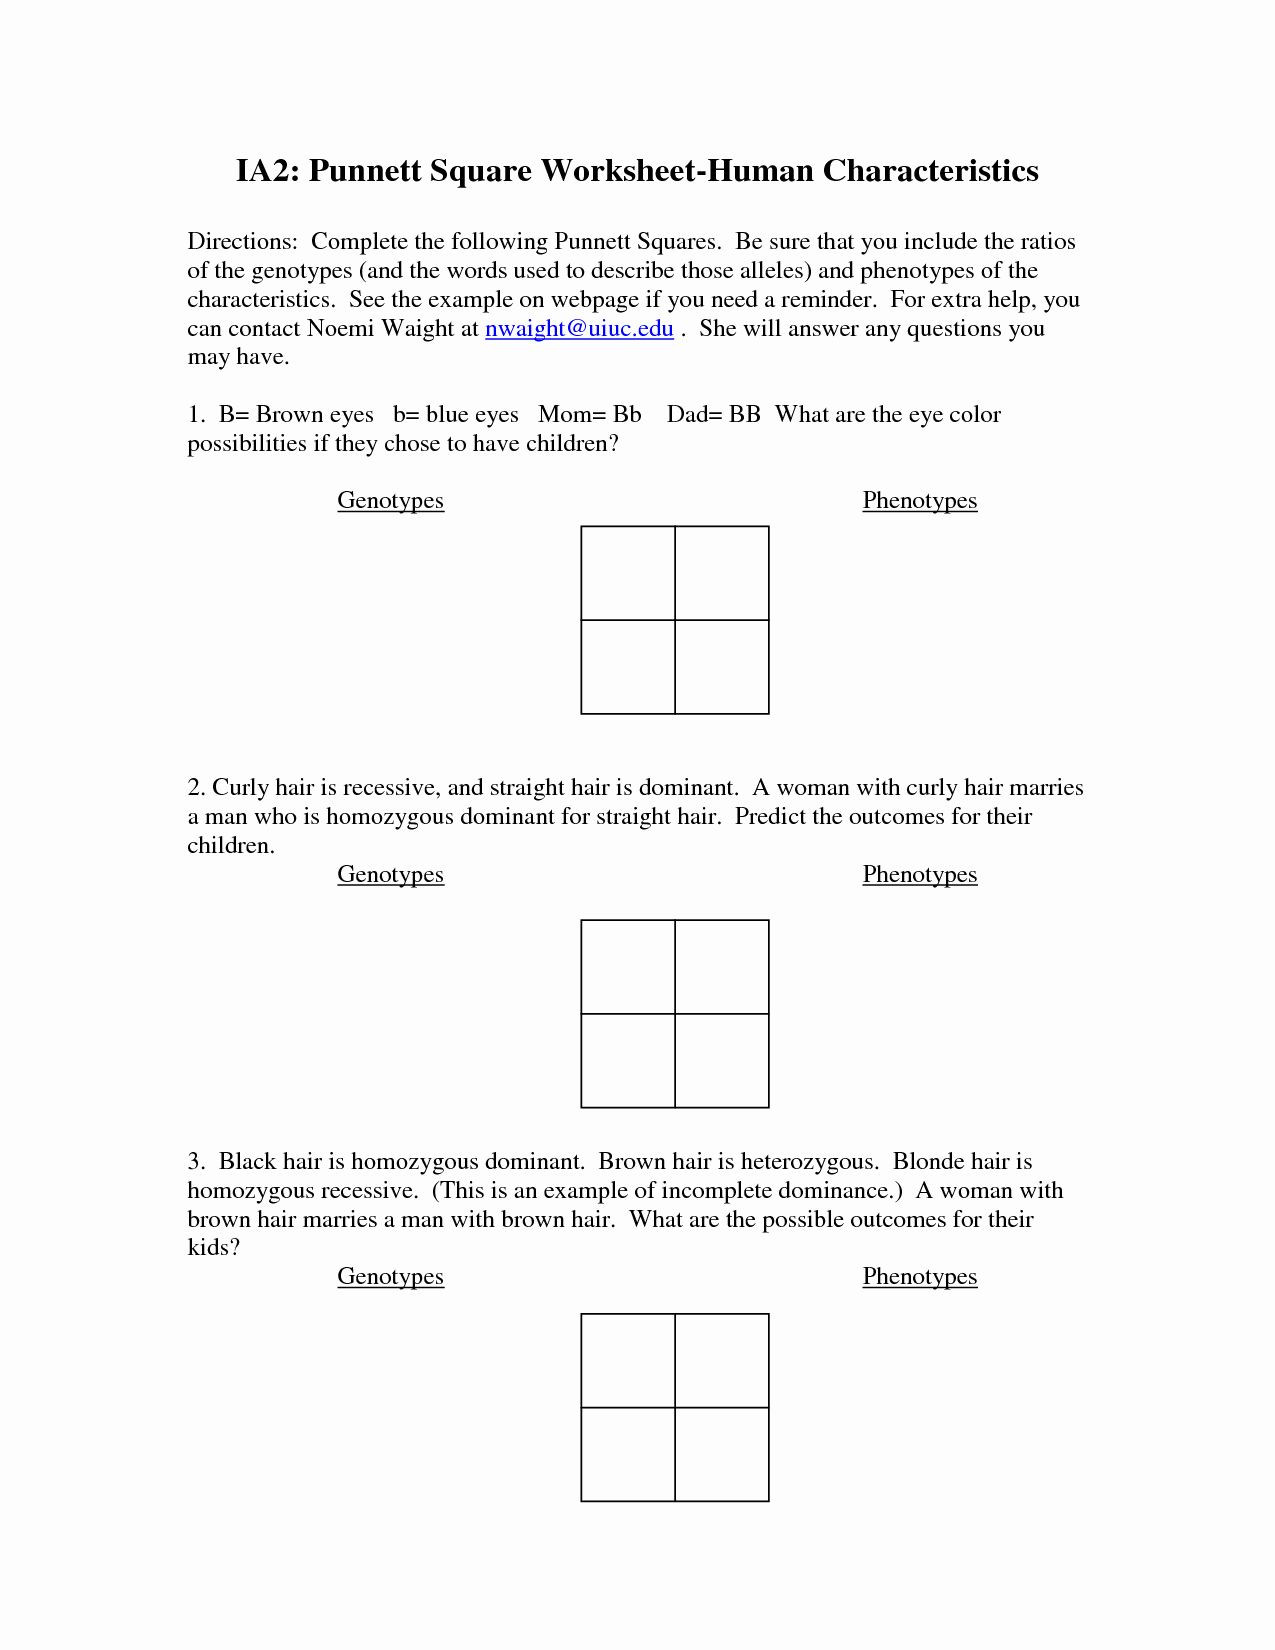 Punnett Square Practice Problems Worksheet 50 Genetics Problems Worksheet Answer Key In 2020 with